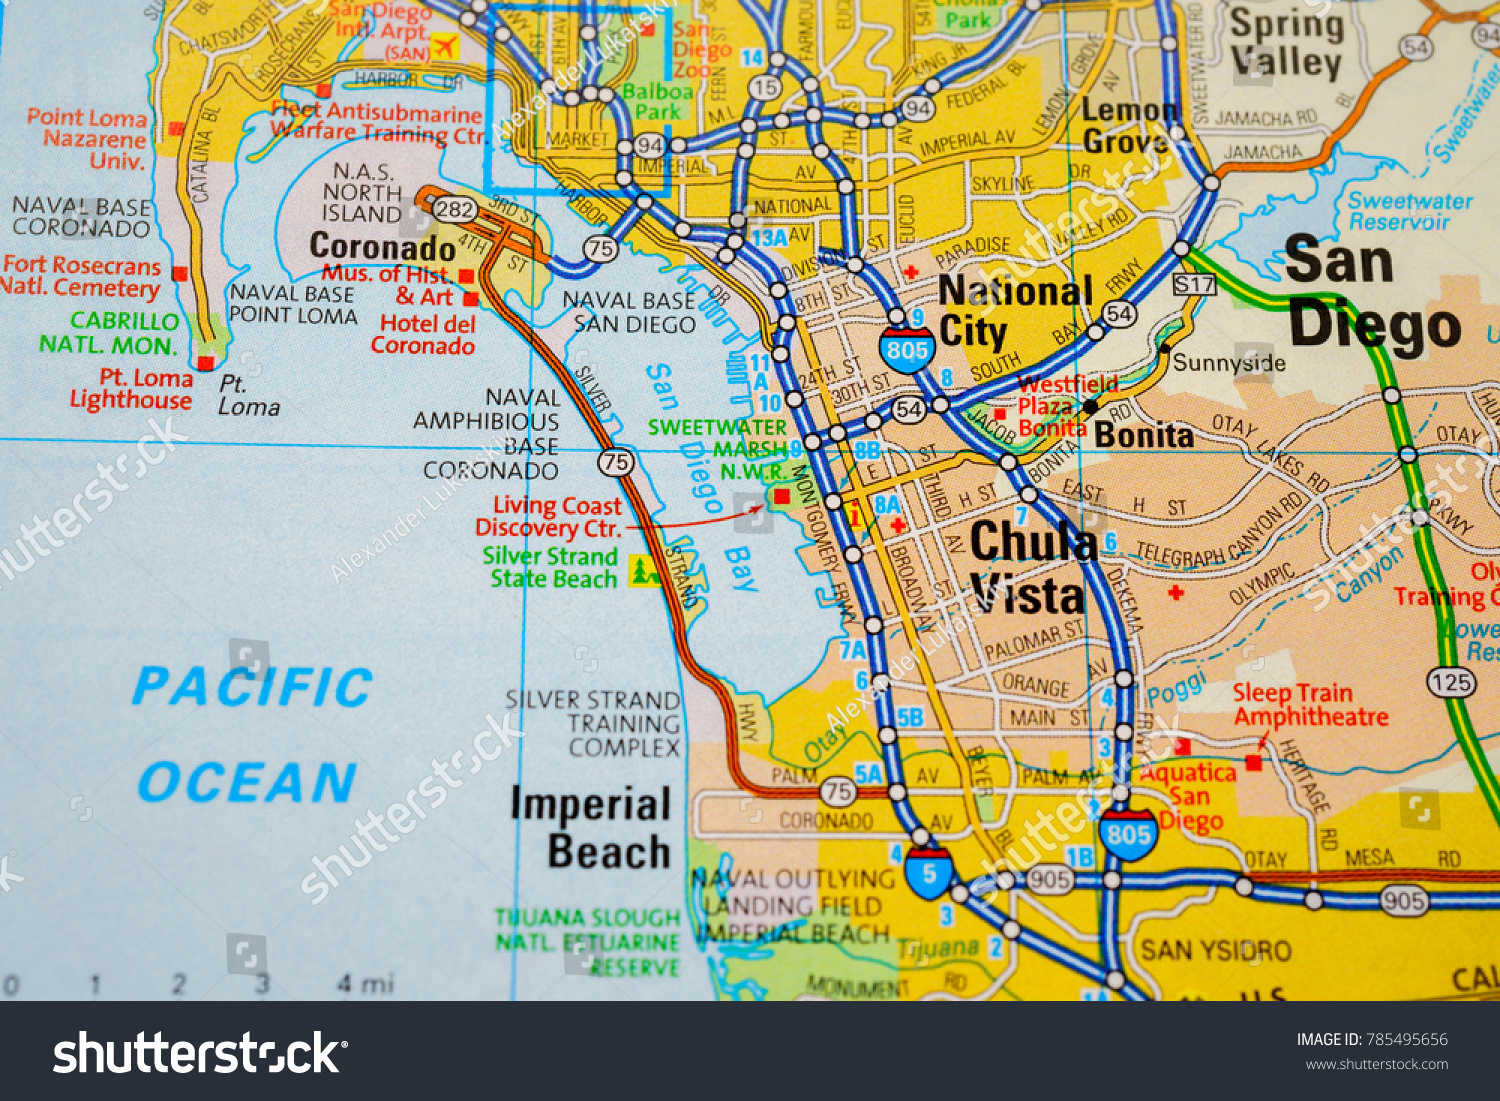 San Diego USA Map Stock Photo (Edit Now) 785495656 - Shutterstock